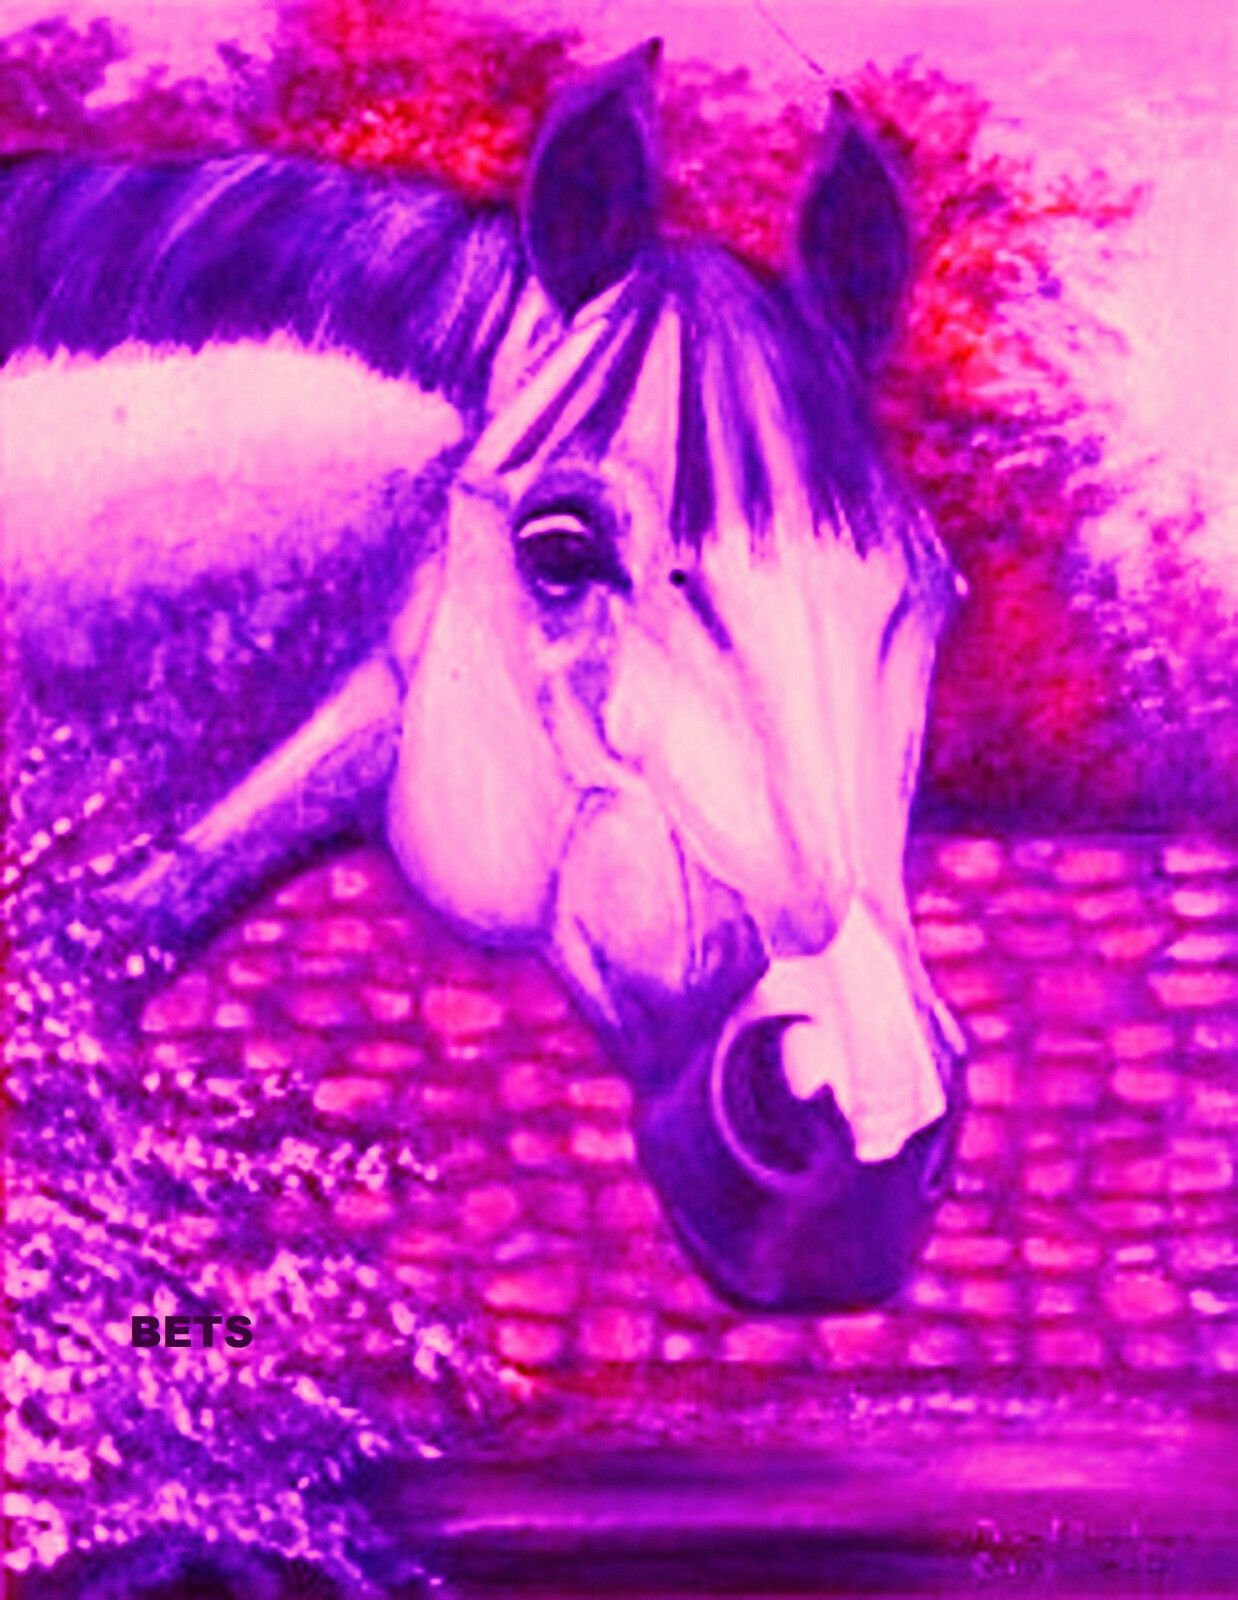 HORSE PRINT Giclee GREY Horse AMERICA by artist  BETS 5 COLORS print size 12 X 16  80% off